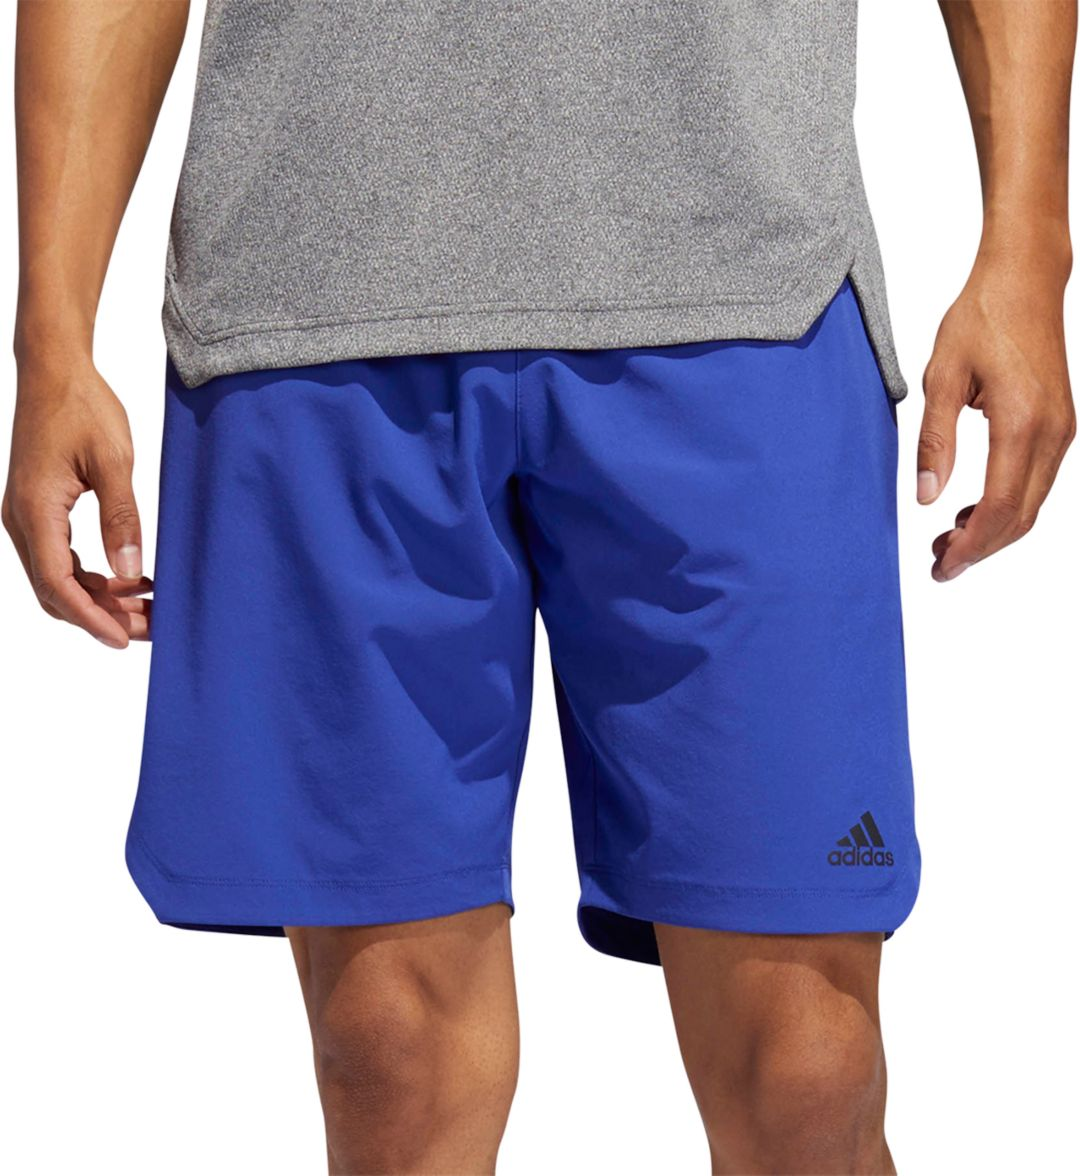 feed318d adidas Men's Axis Woven Training Shorts